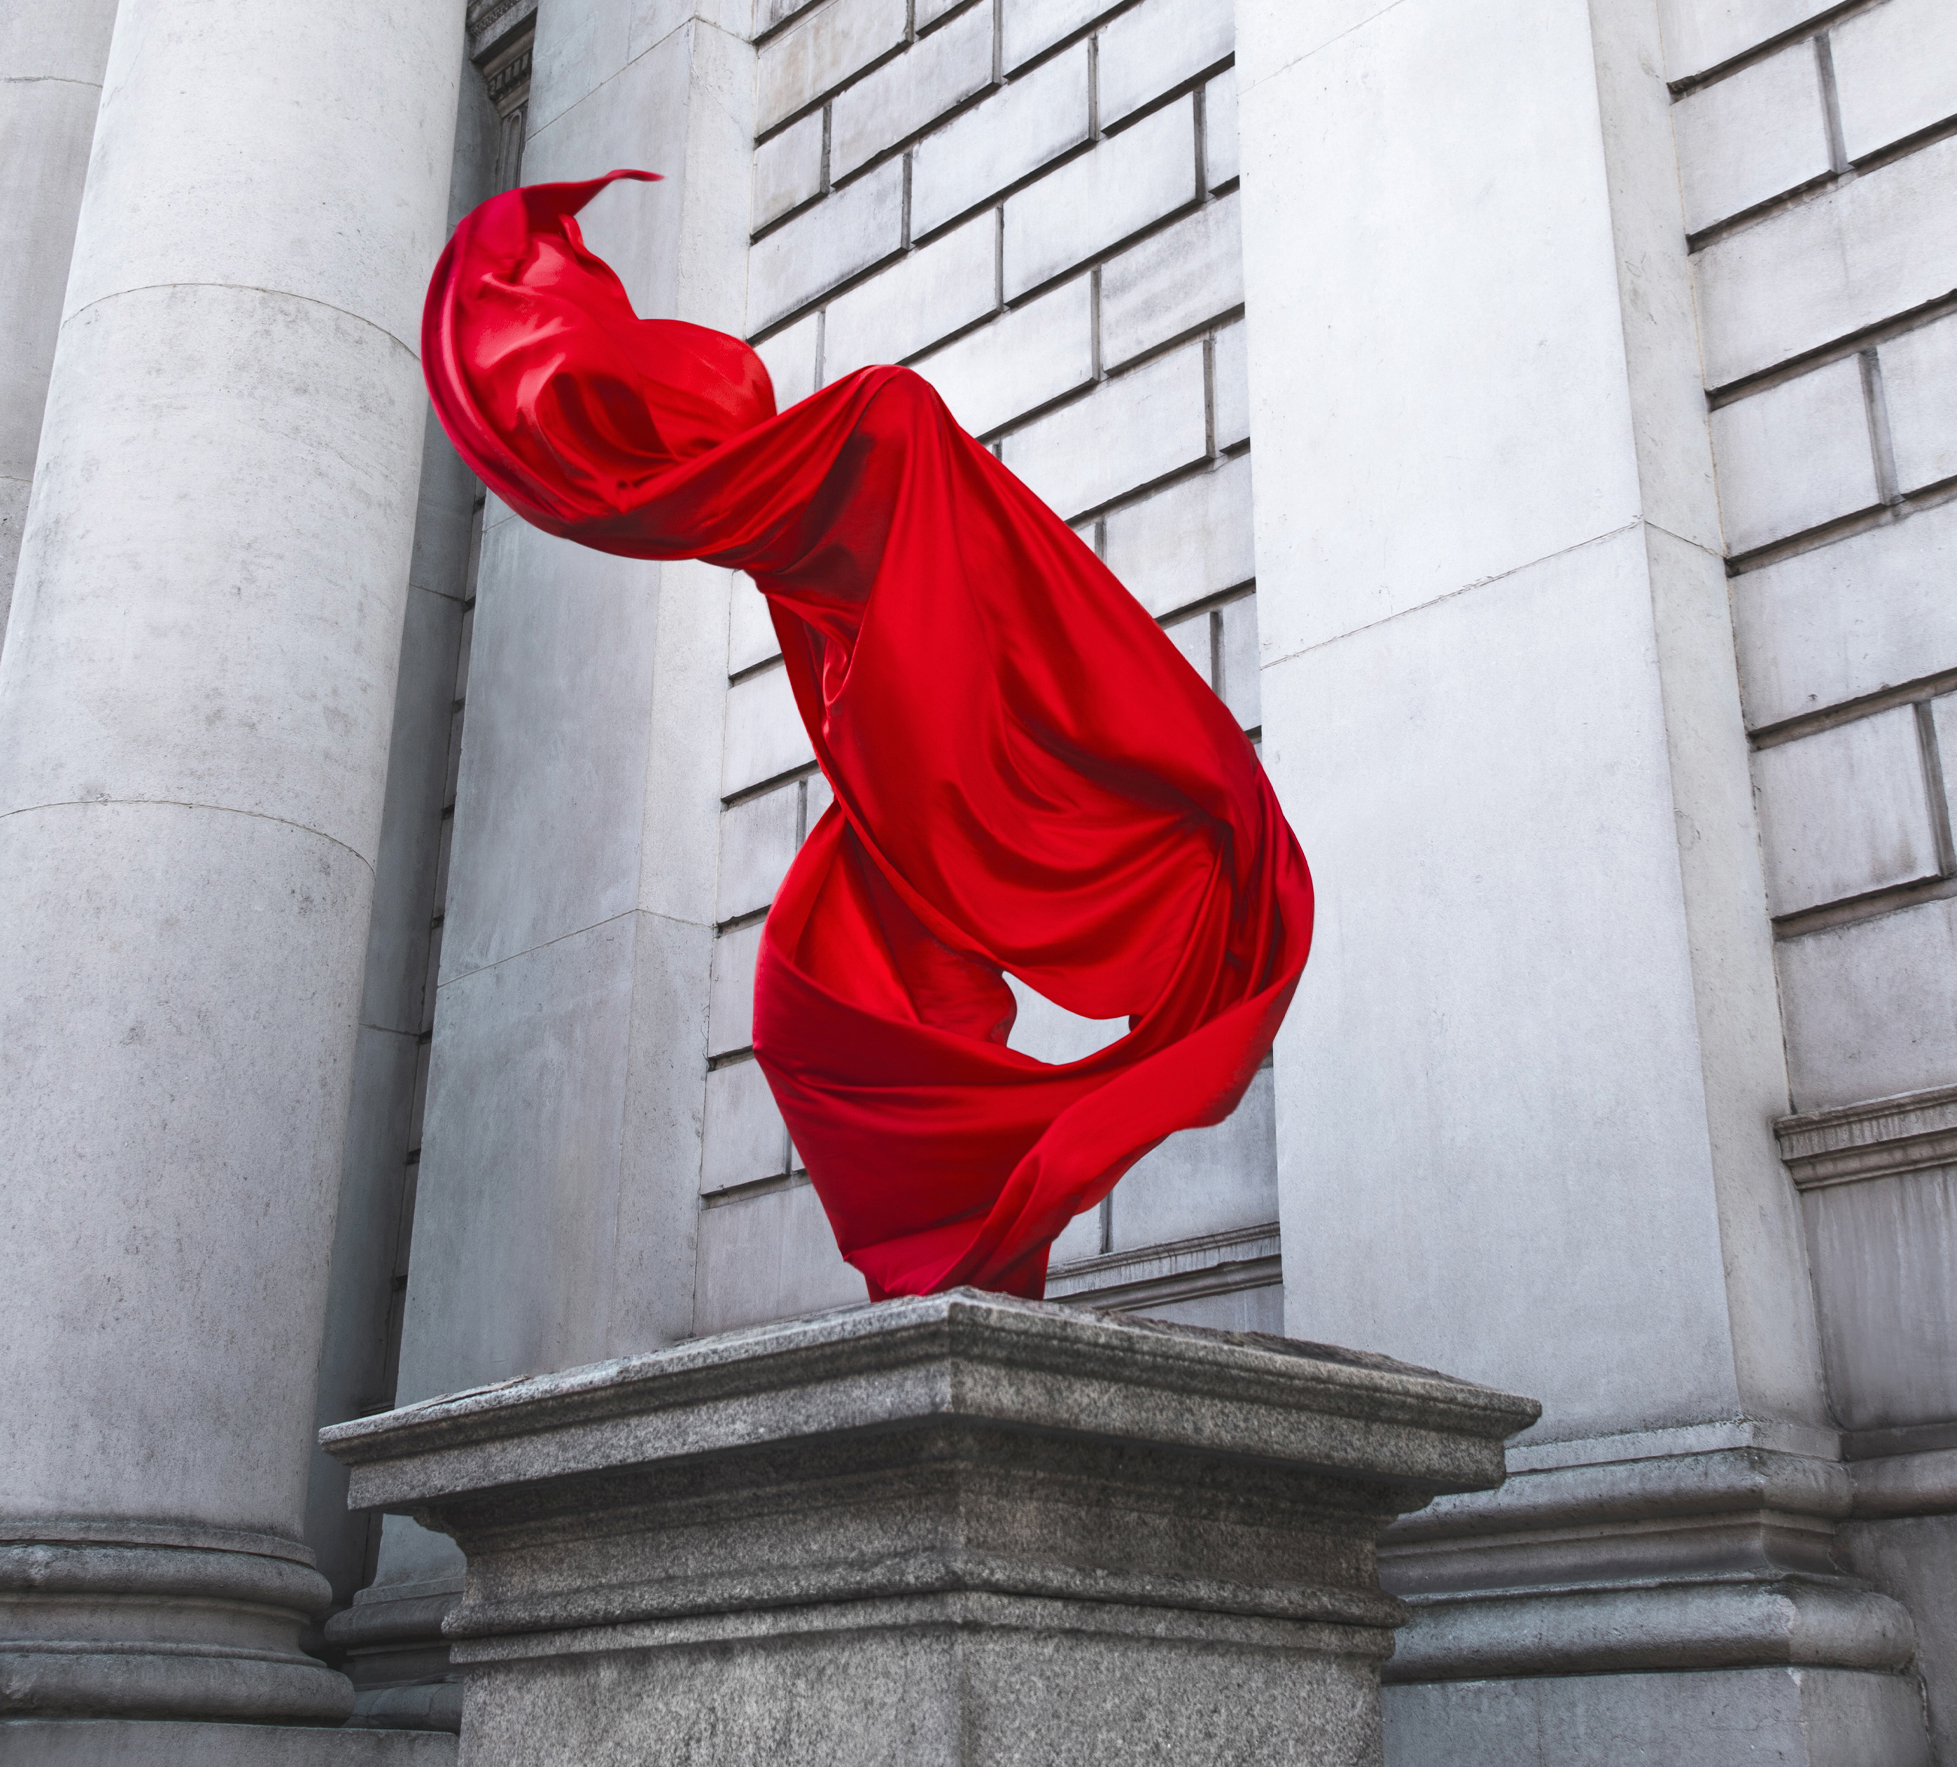 Cover image: Sculpture Dublin